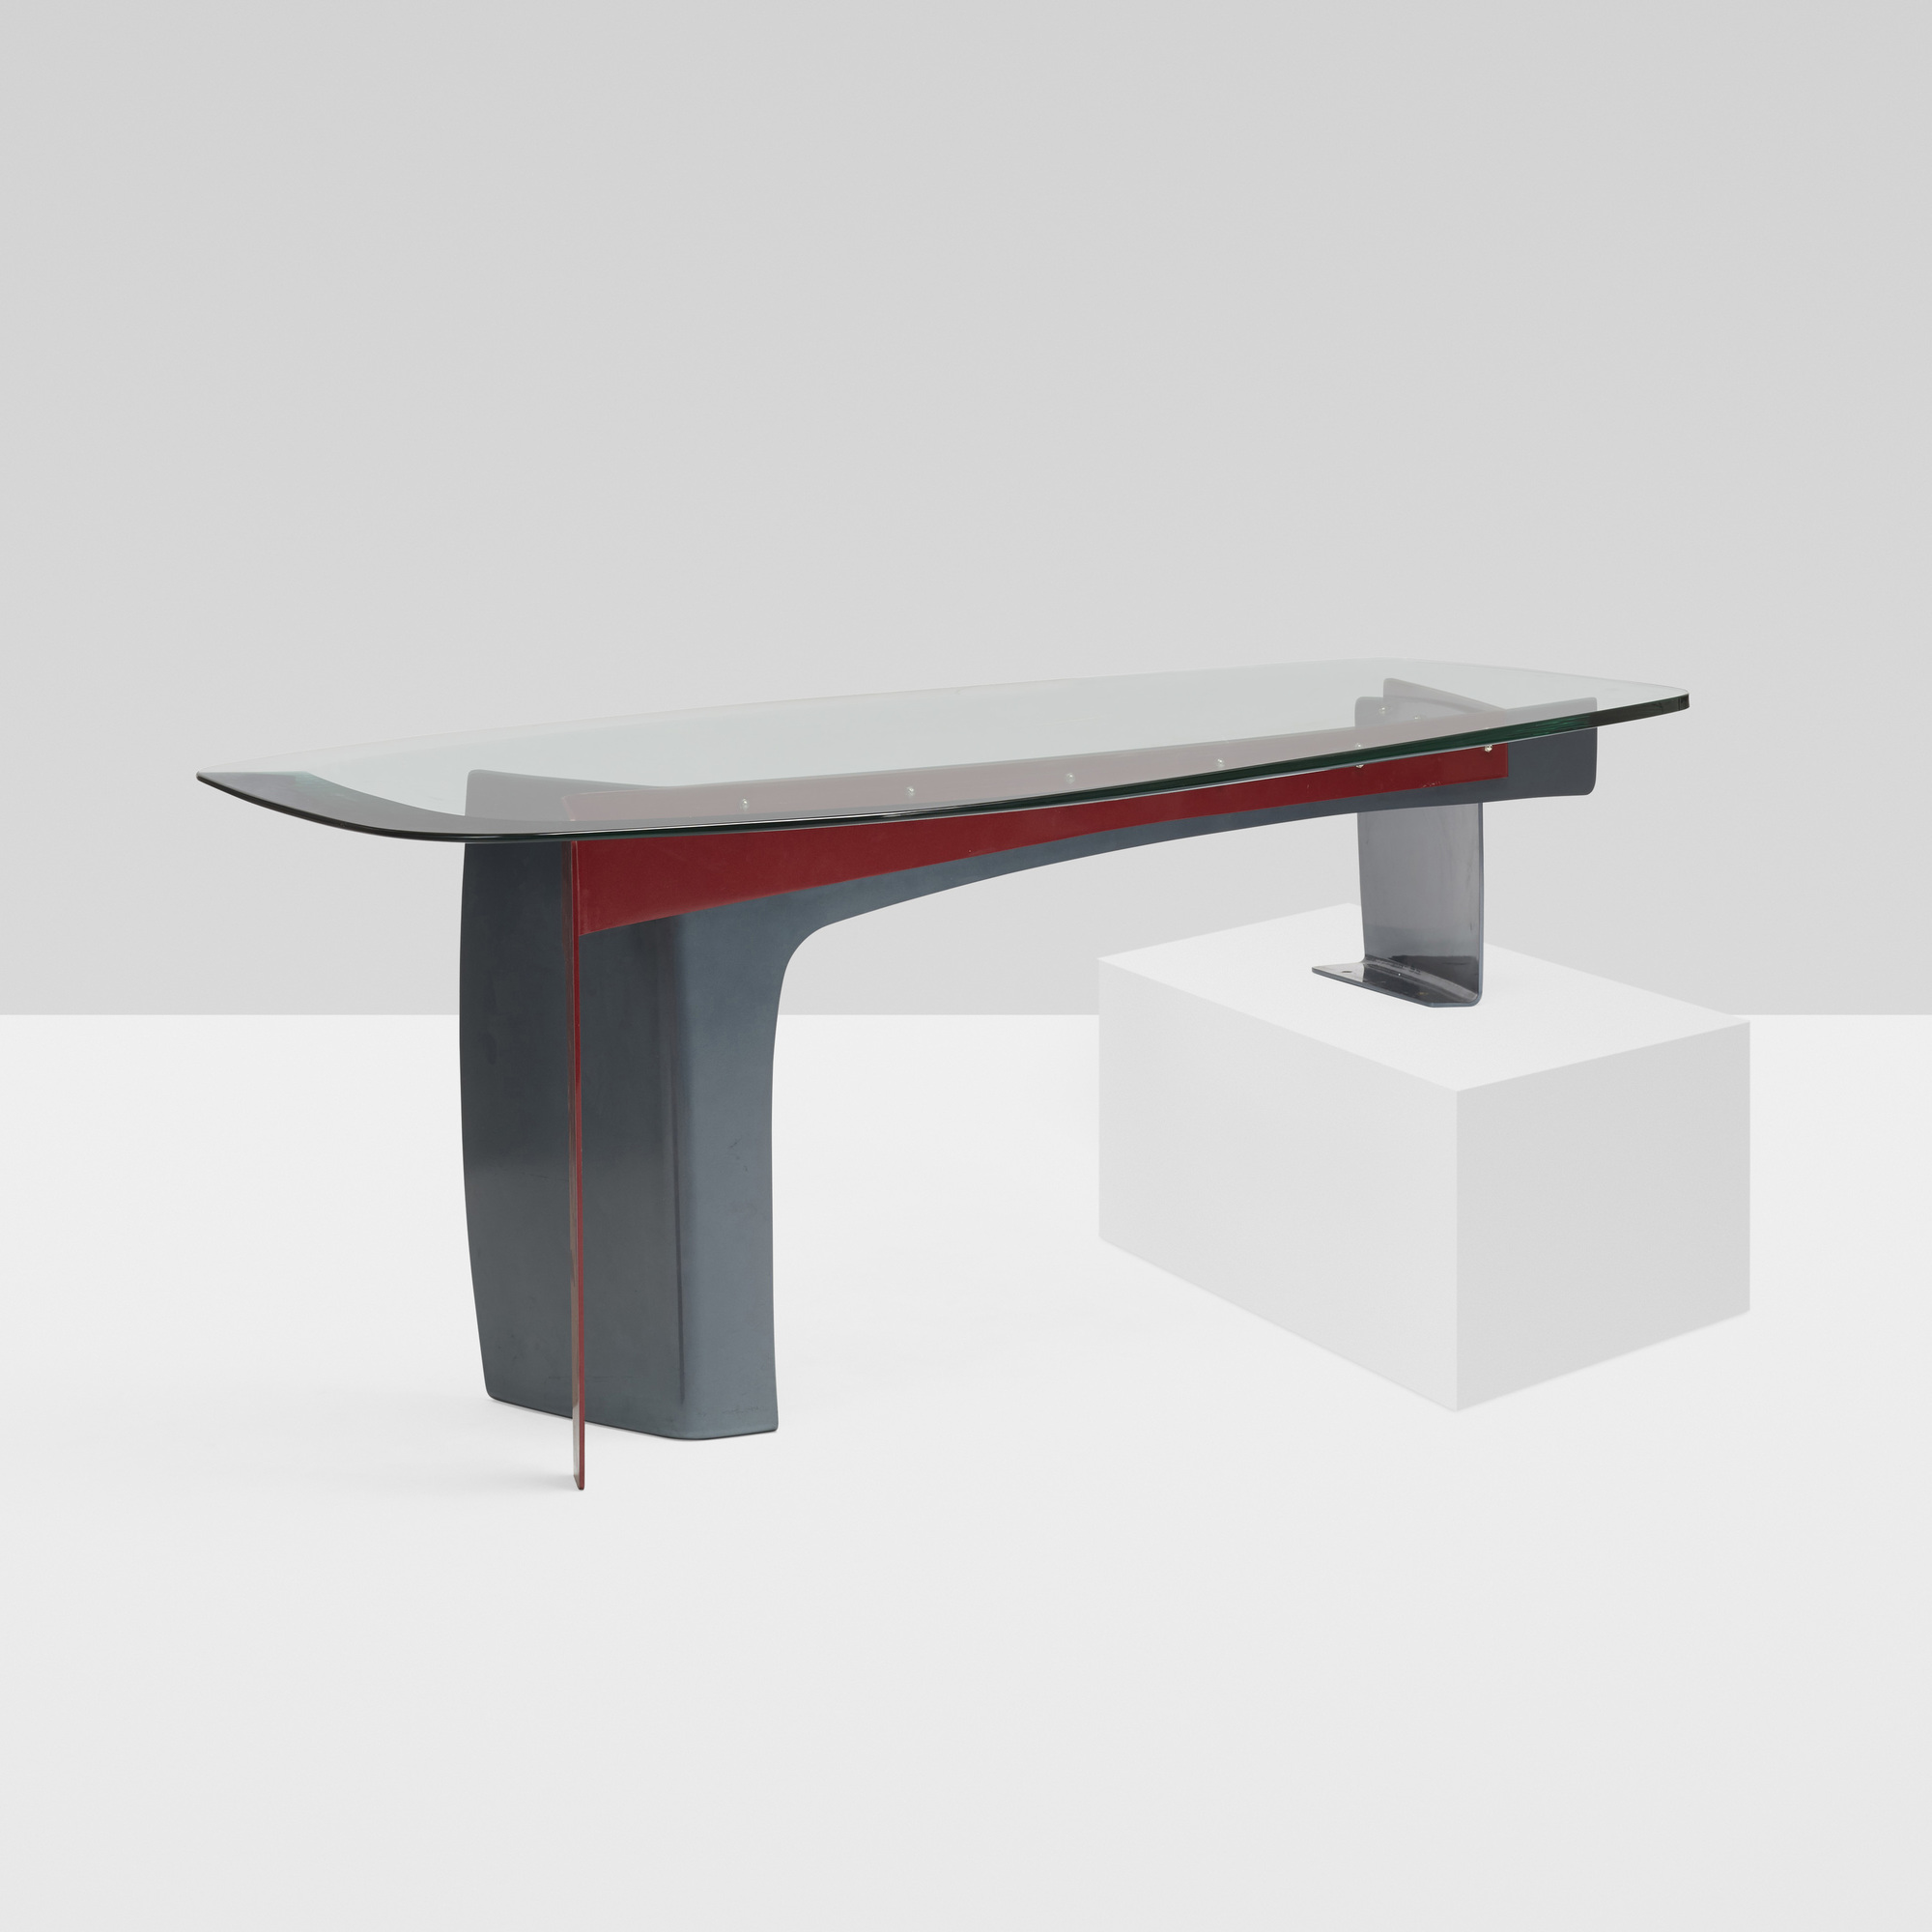 272: Ron Krueck and Mark Sexton / custom desk from Untitled No. 2, Chicago (2 of 4)